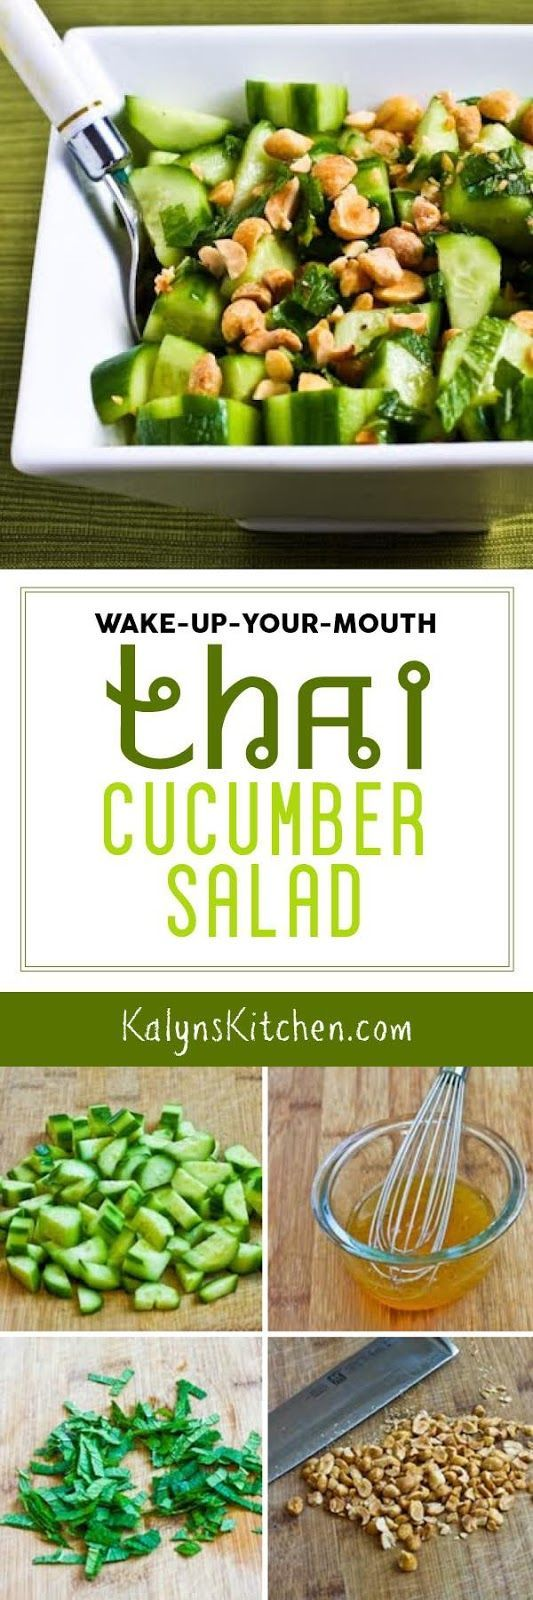 Wake-Up-Your-Mouth Thai Cucumber Salad is a fabulous side dish for any Asian meal that's low-carb, gluten-free, and South Beach Diet friendly. [found on KalynsKitchen.com]